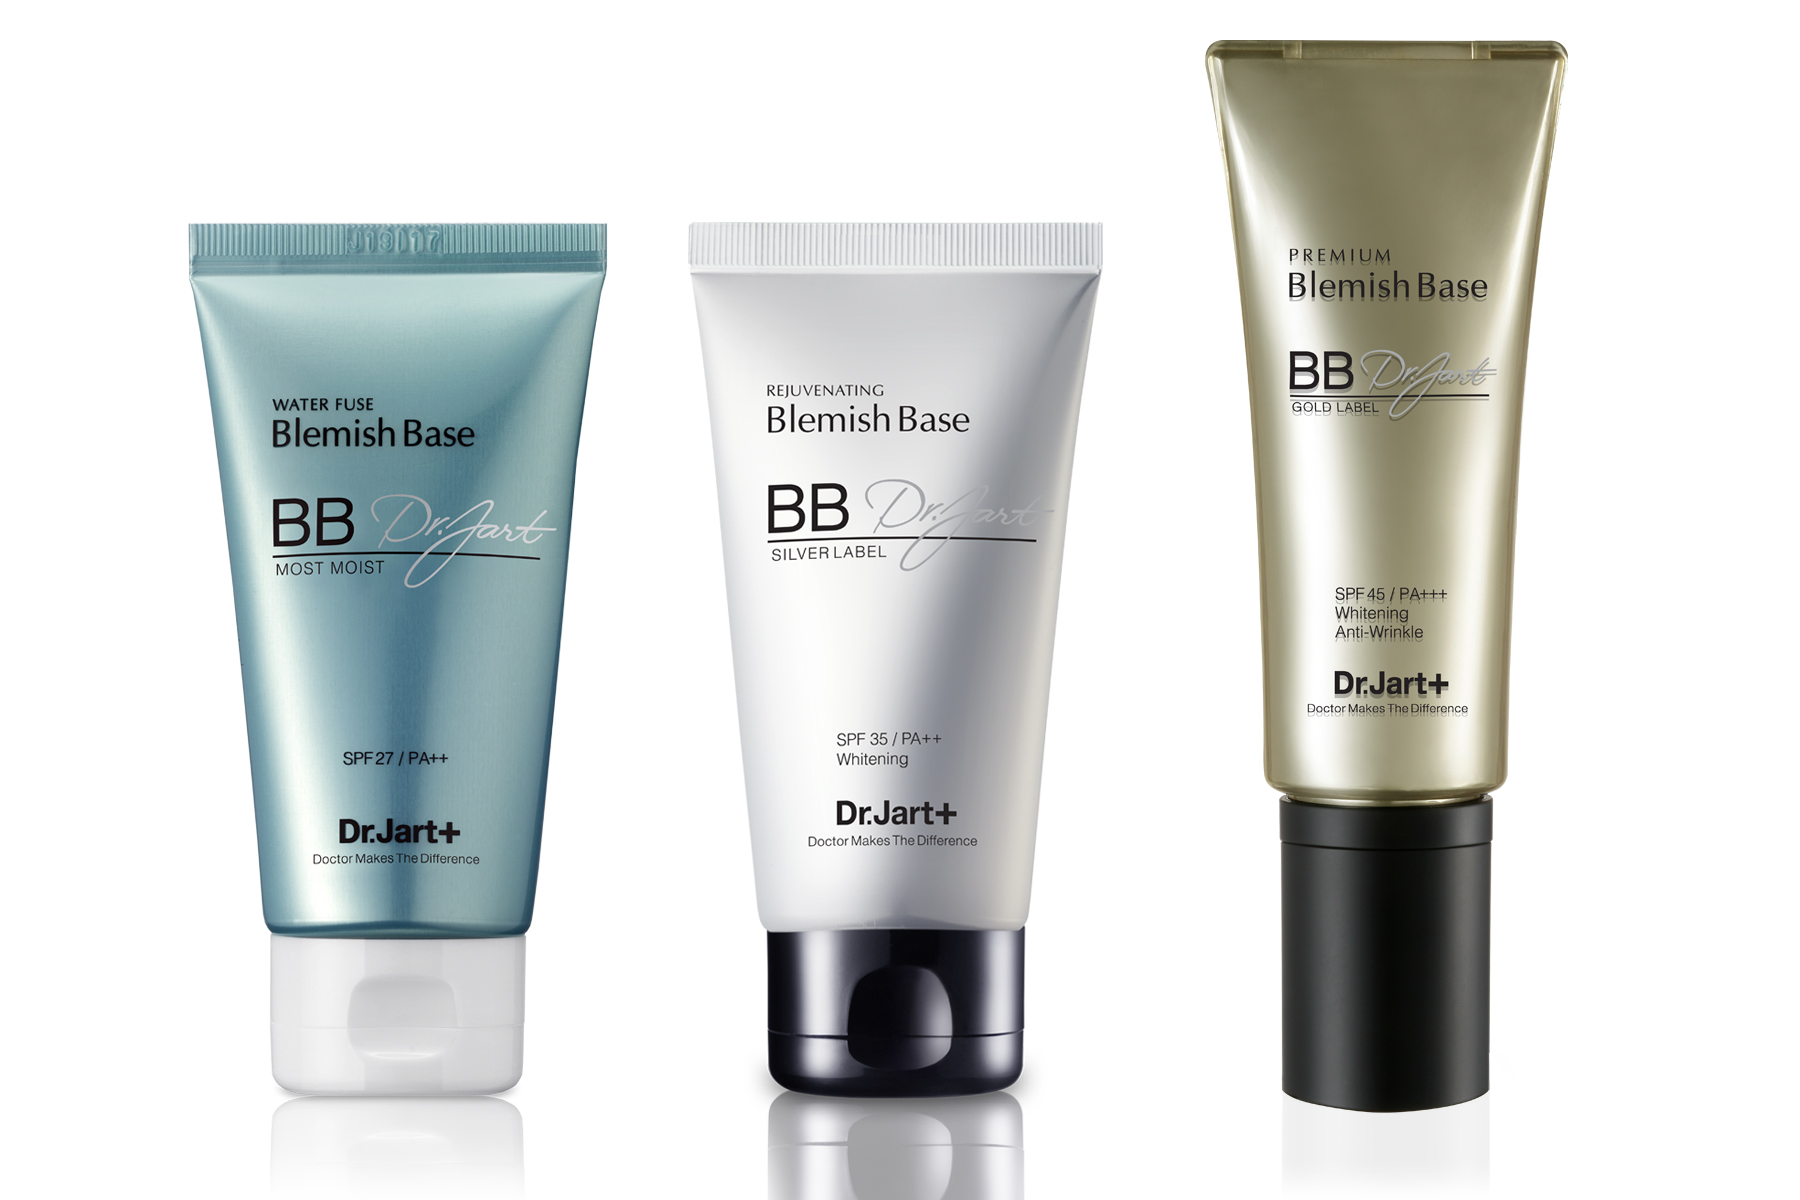 What are BB Creams?